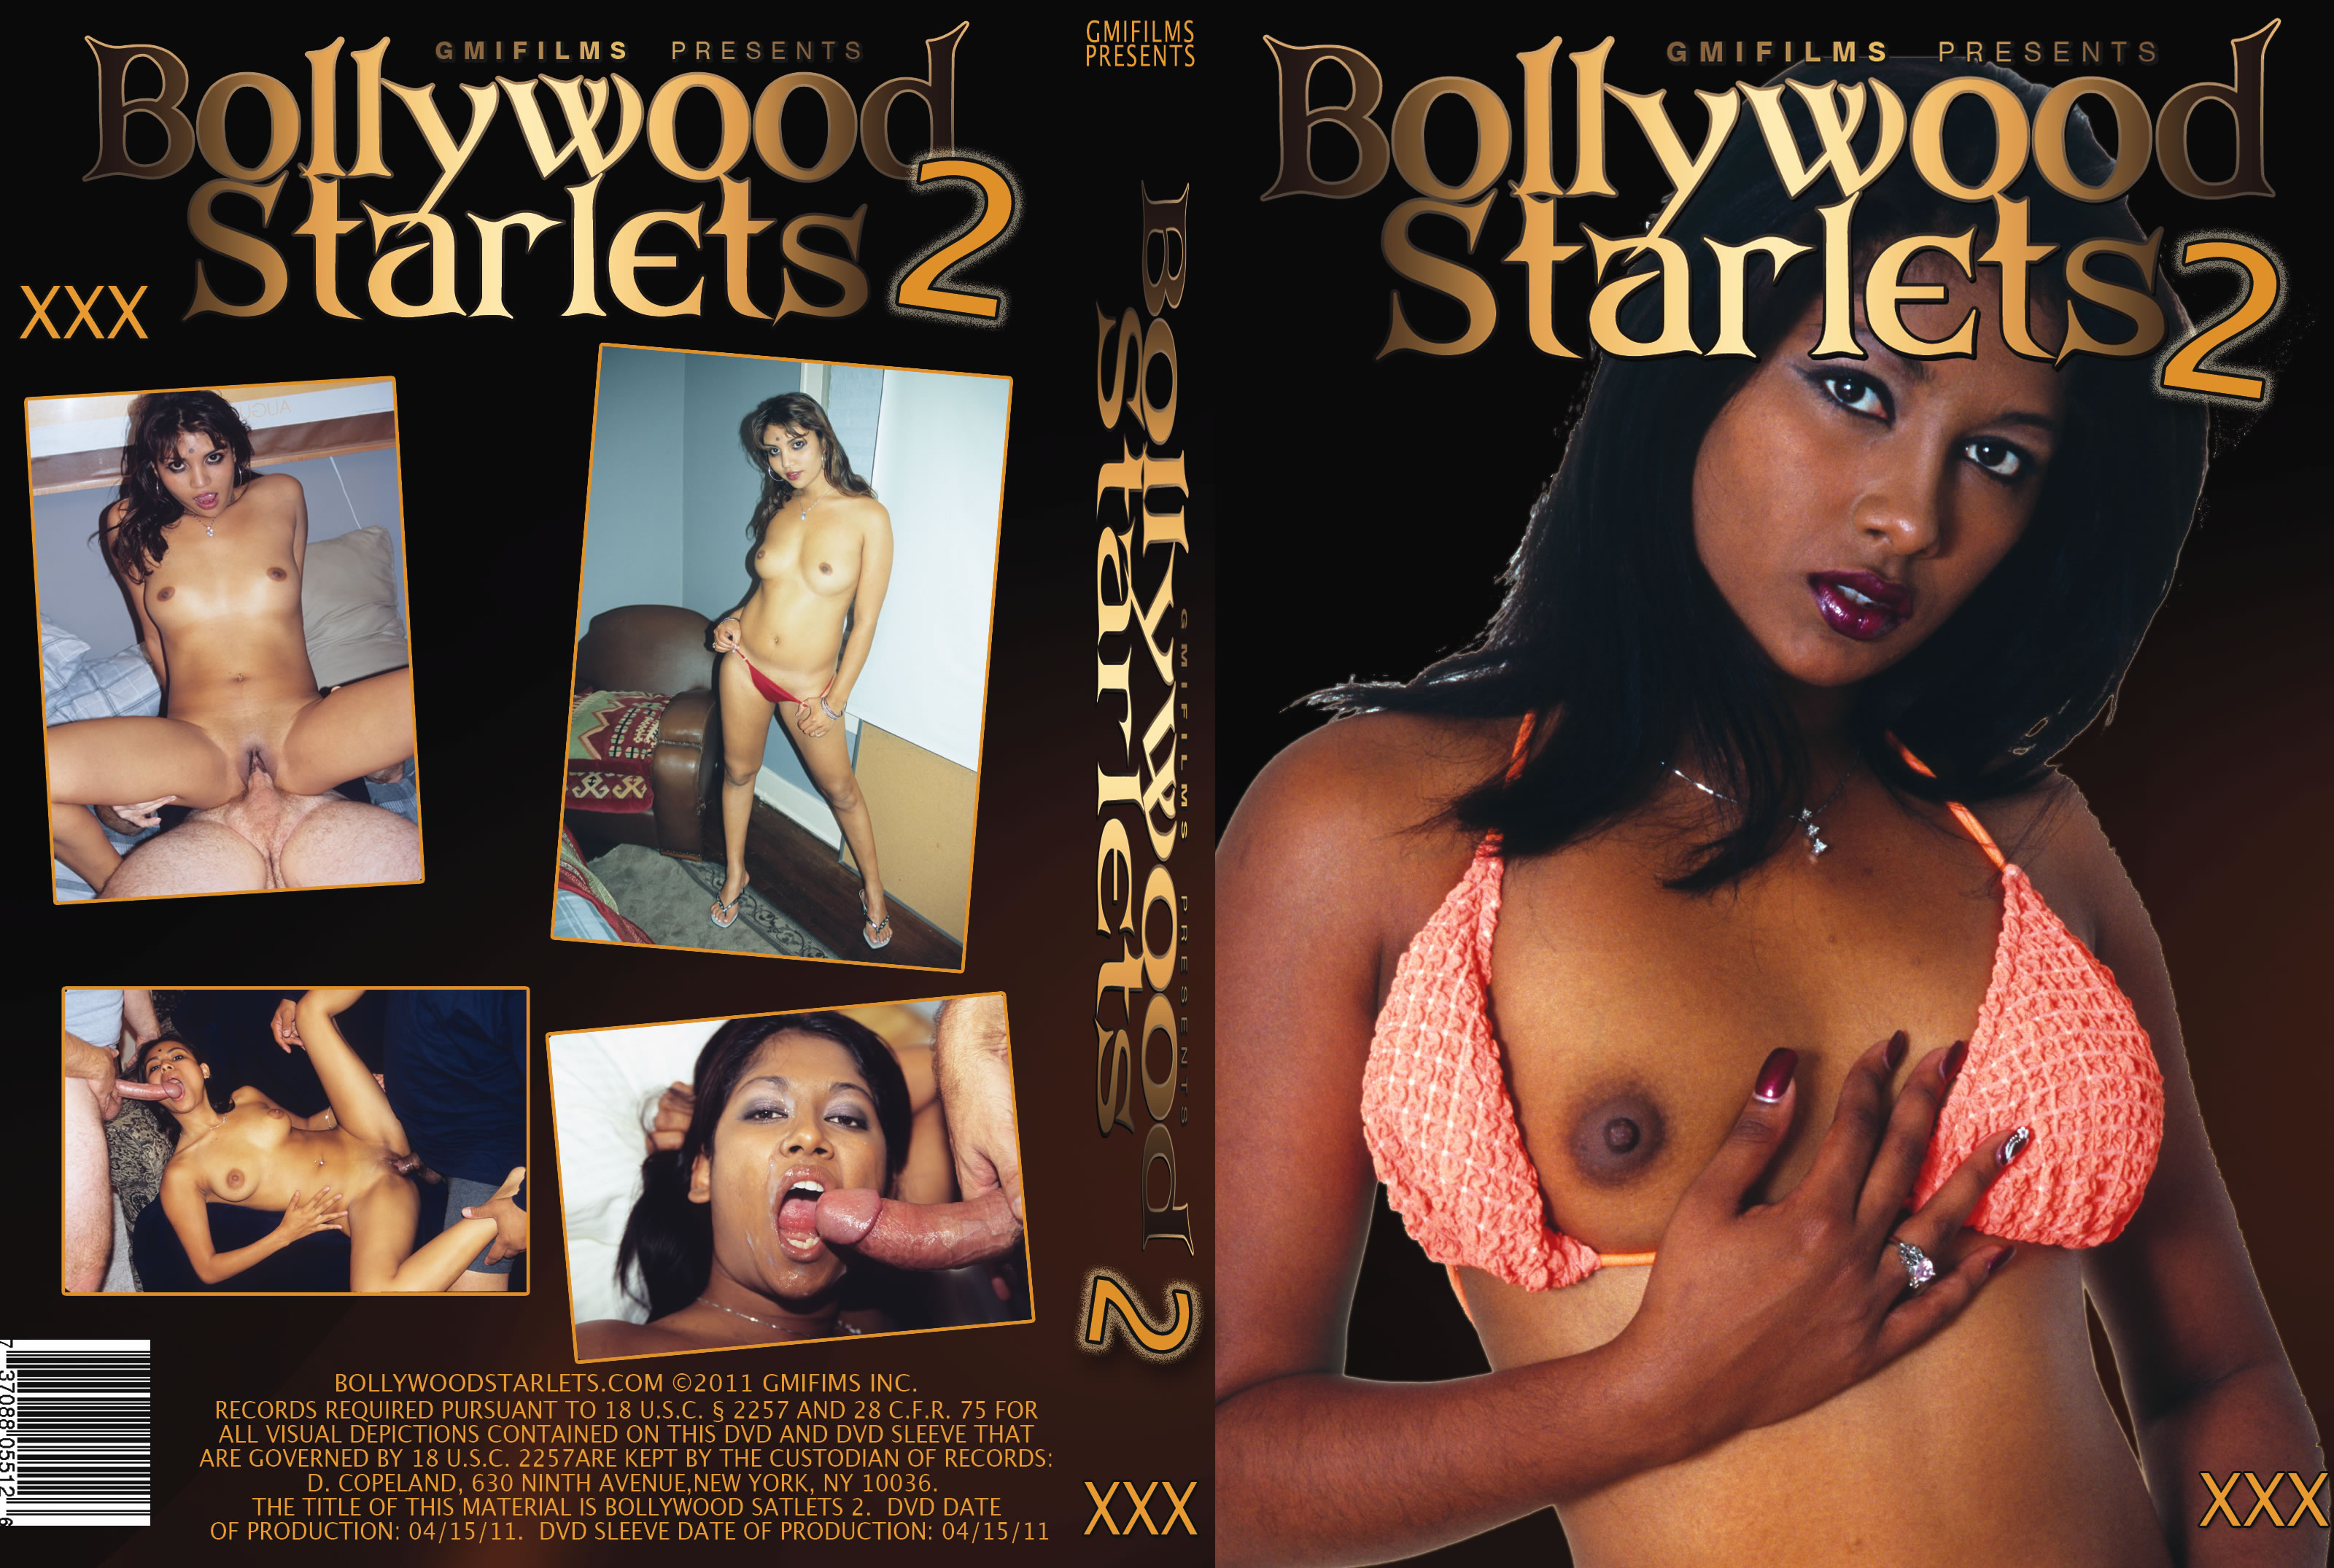 Bollywood Starlets #2